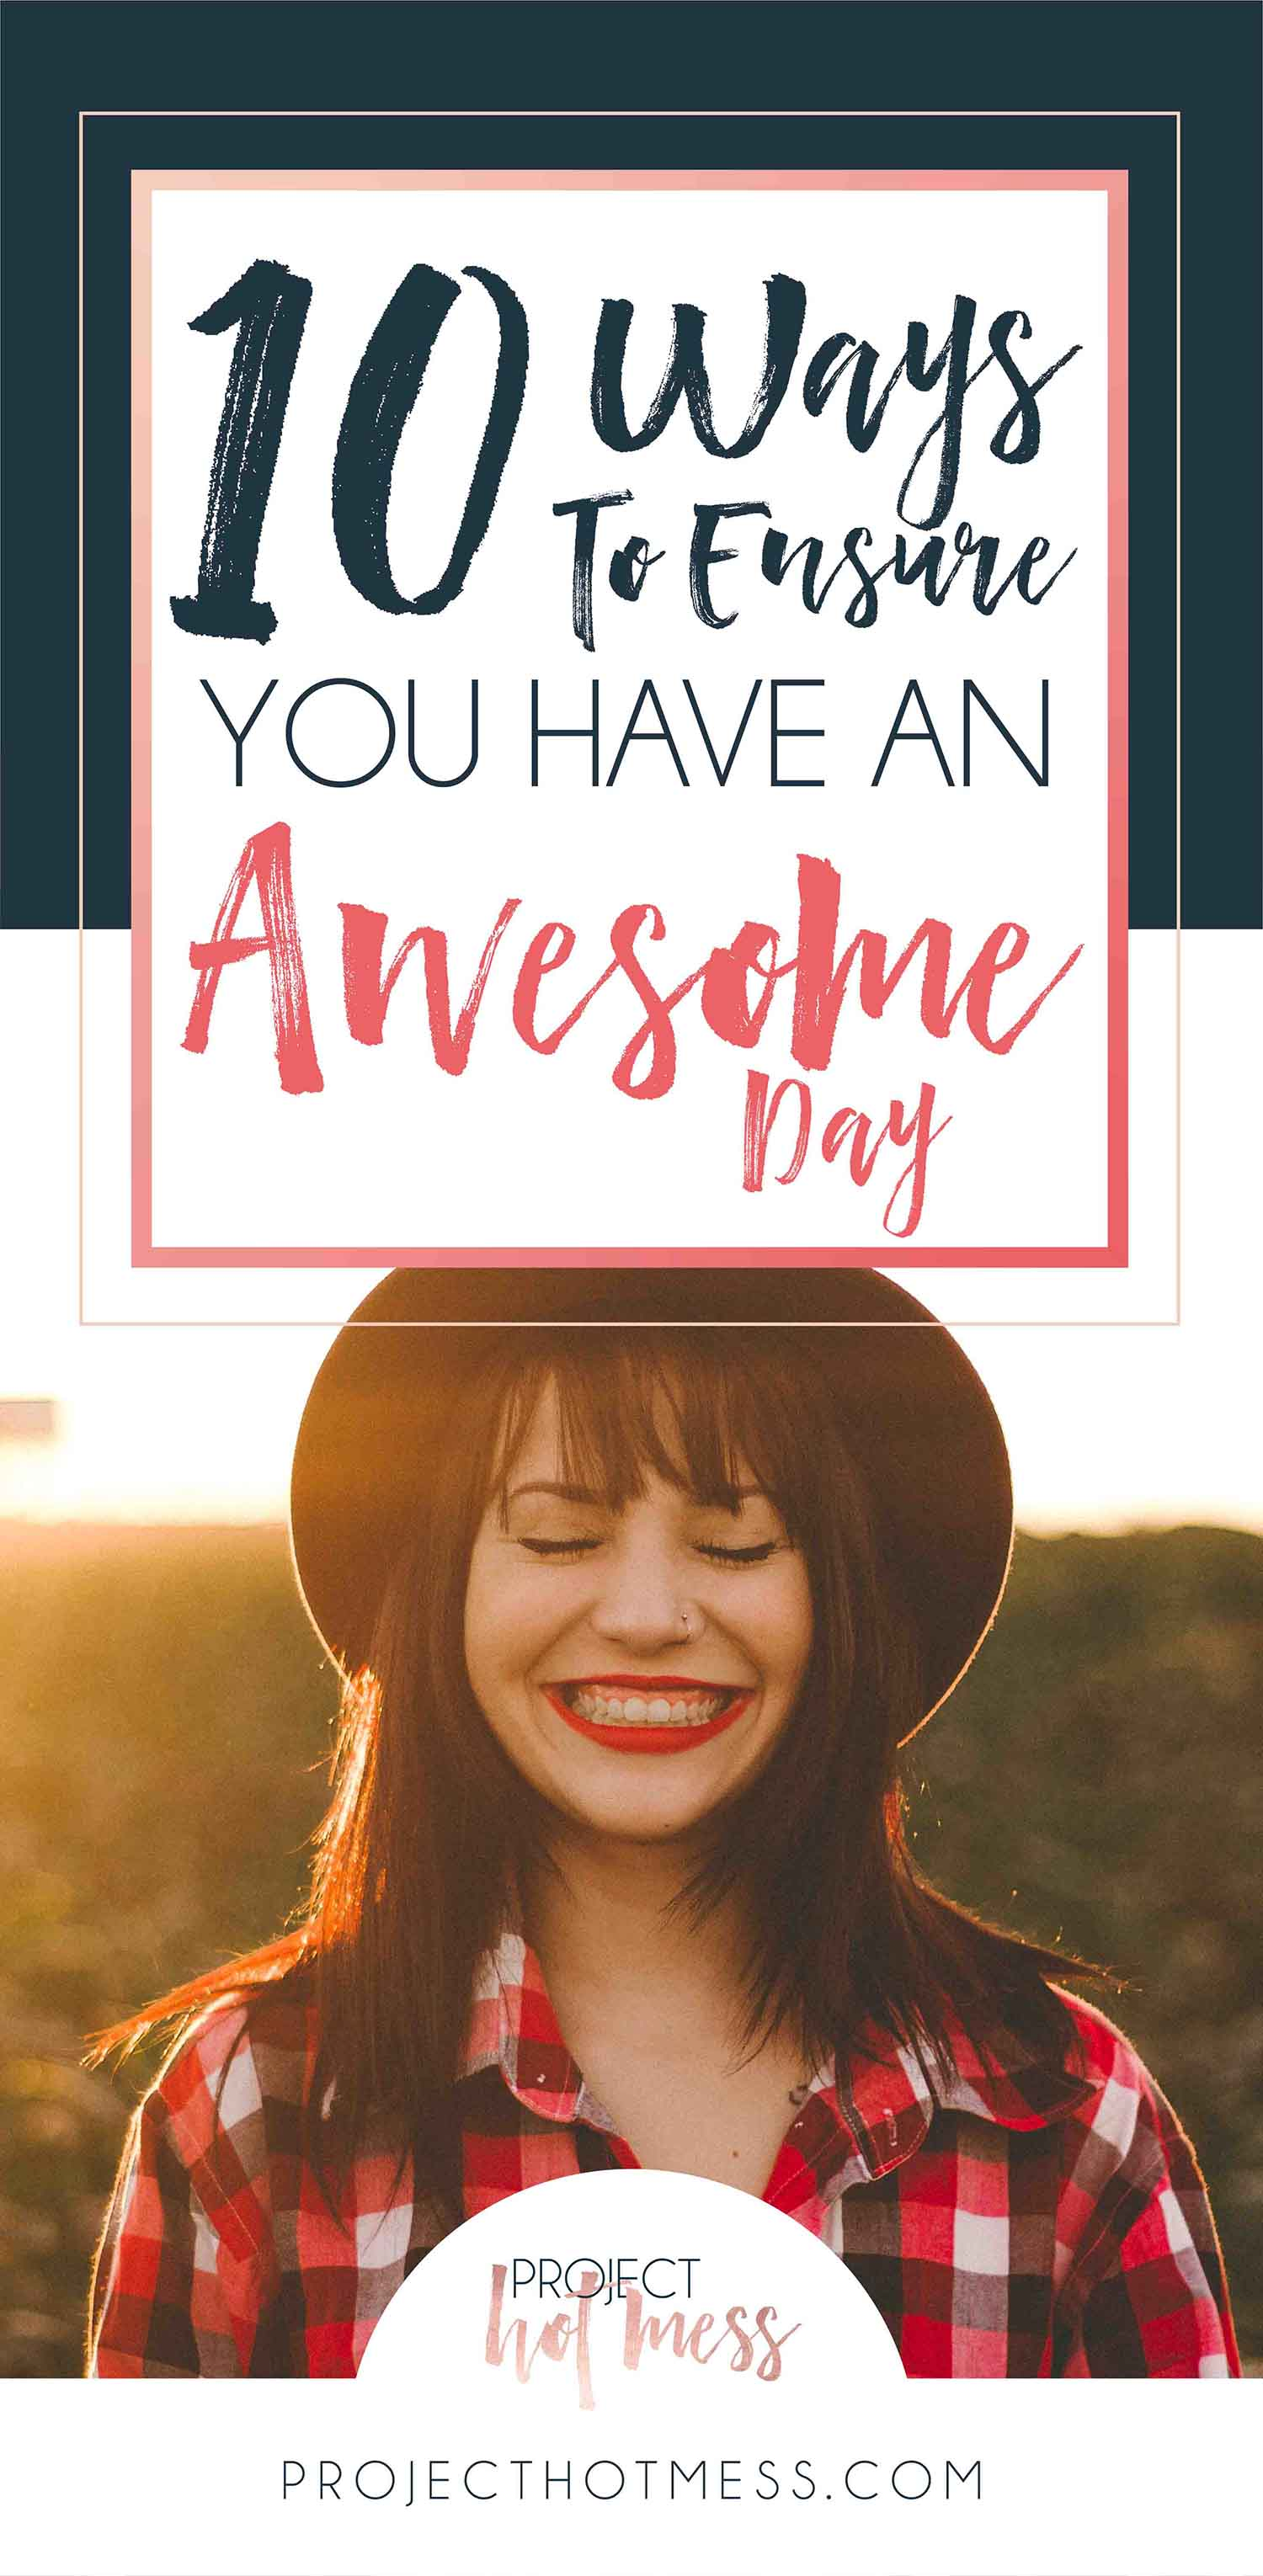 We all love those days when we feel like we are on top of the world. Why not stack the odds in your favour with these ways ensure you have an awesome day. You're probably doing some of them already!